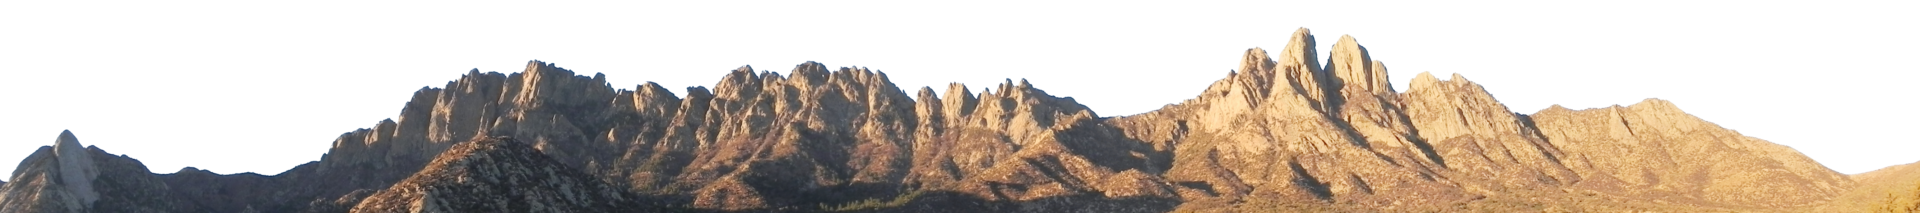 Las Cruces New Mexico Organ Moutains